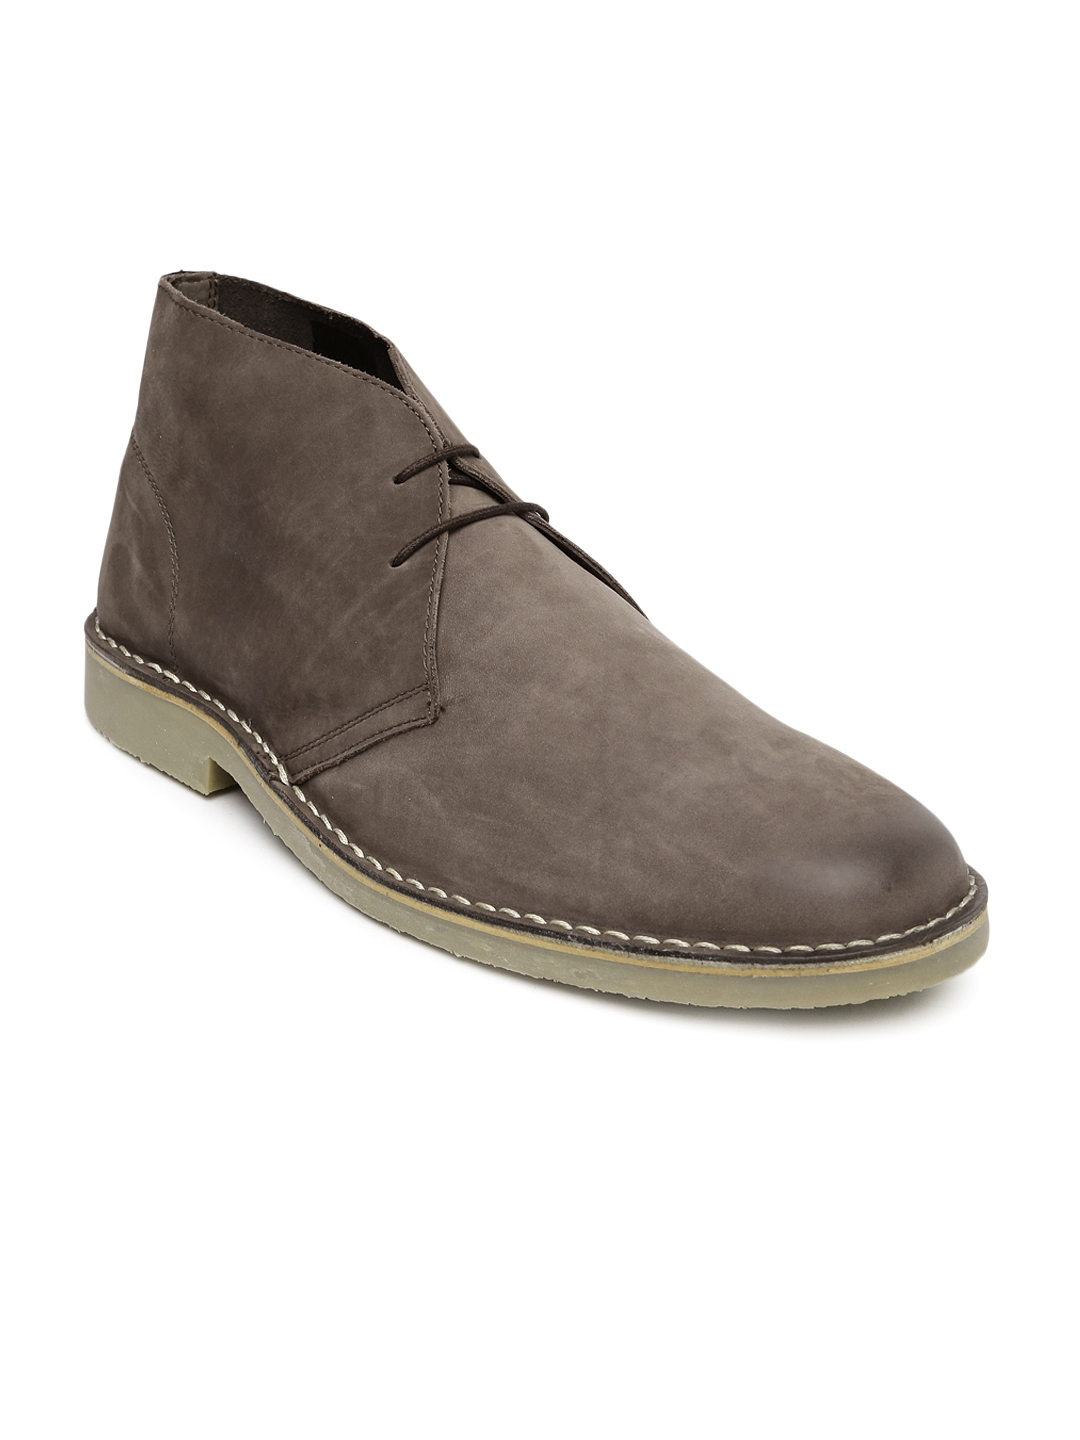 e583bde7354 Buy Steve Madden Men Brown Leather Boots - Casual Shoes for Men ...